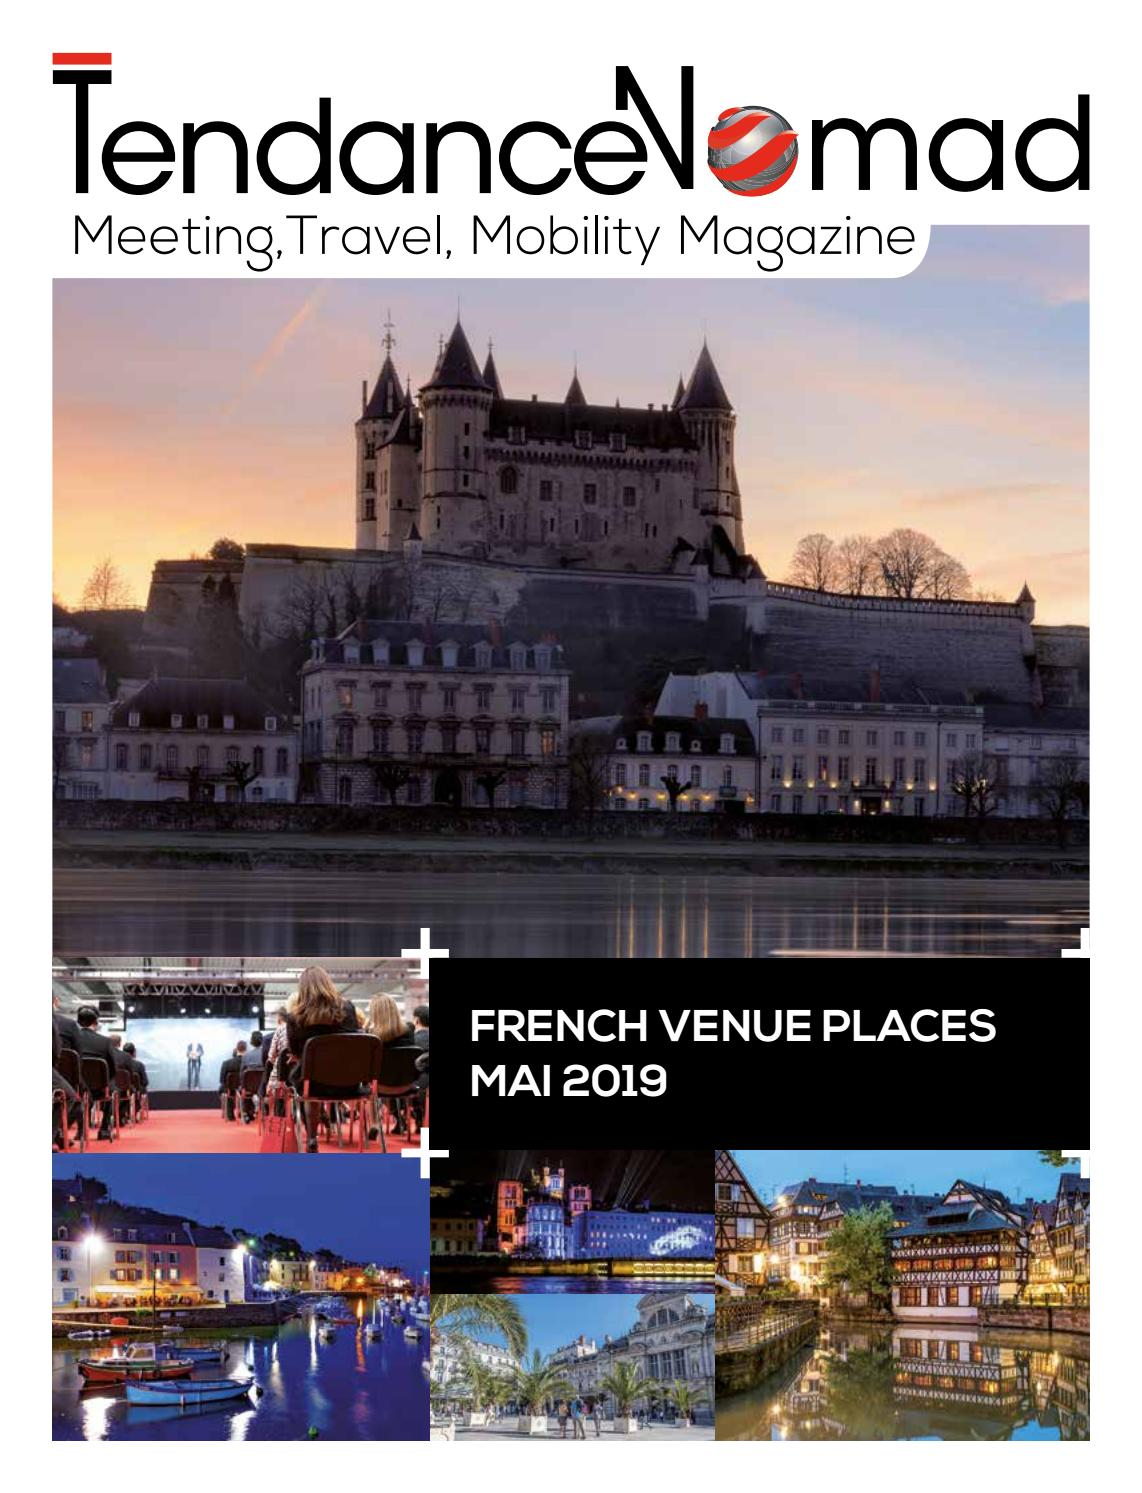 Jardin Des Plantes orleans Génial French Venue Places Mai 2019 by Tendancenomad Publishing issuu Of 67 Best Of Jardin Des Plantes orleans